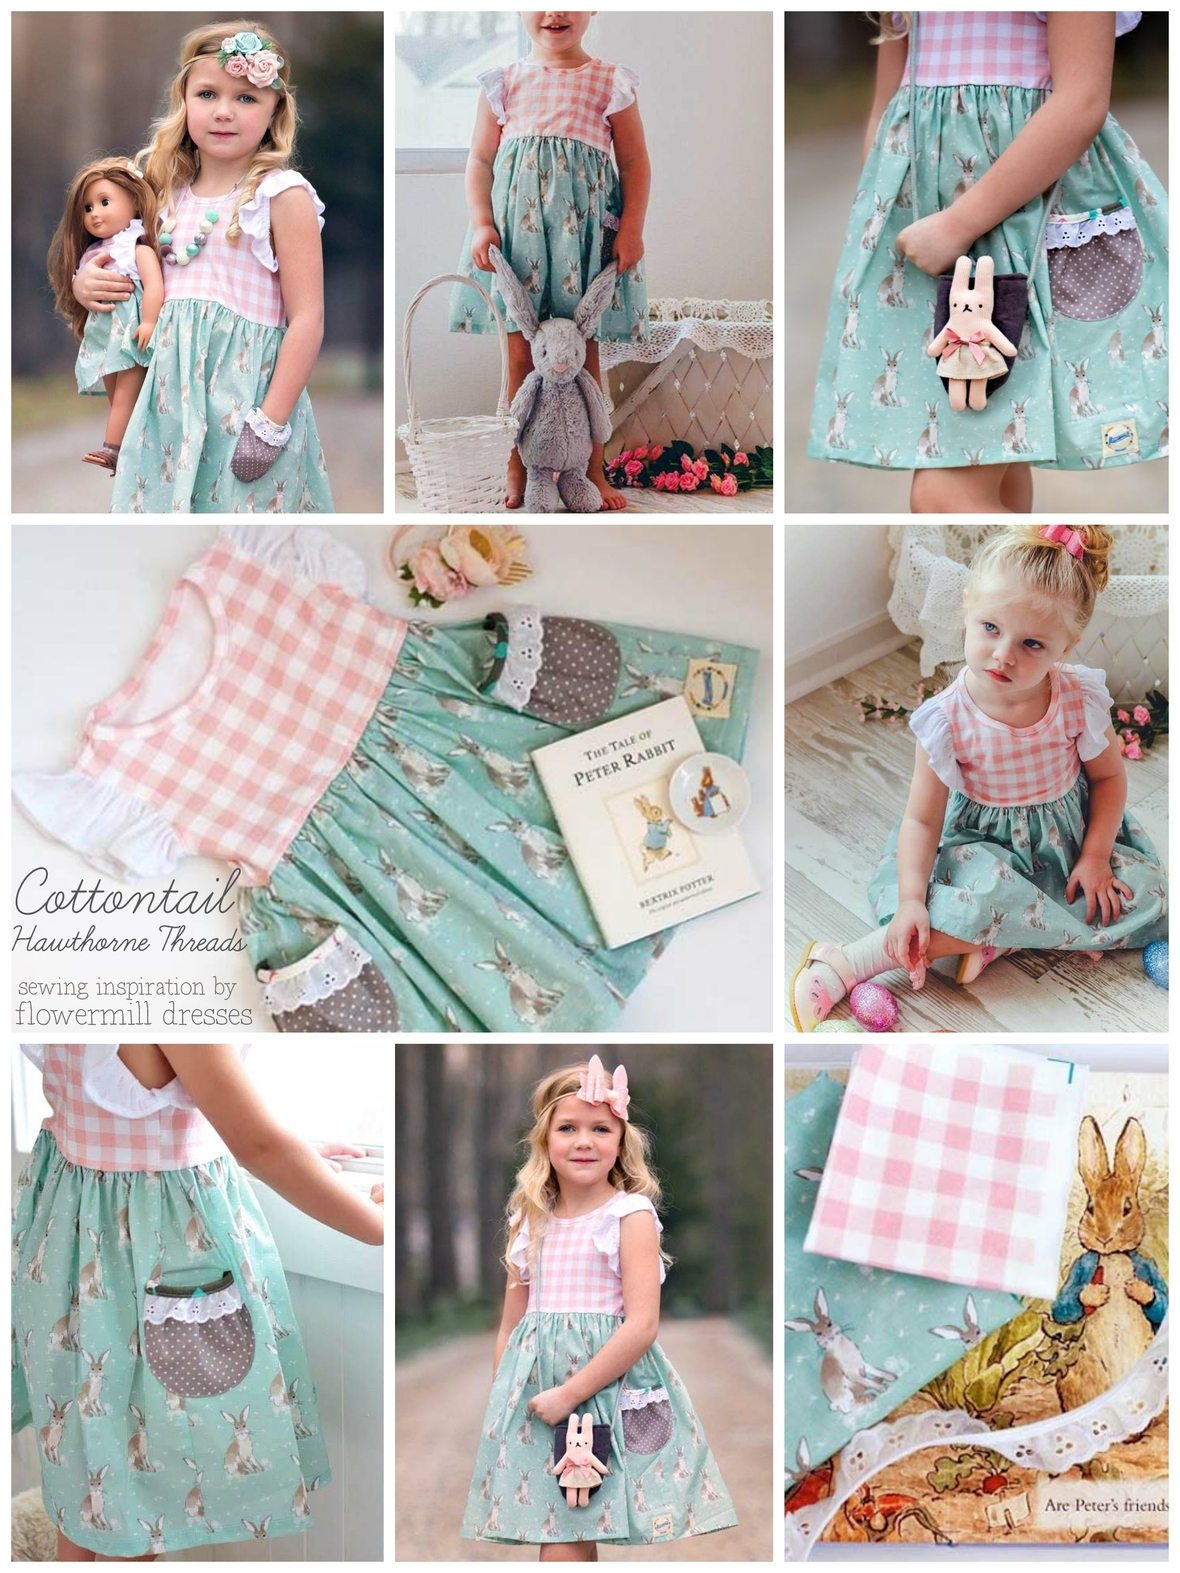 Cottontail Fabric Sewing Inspiration from Flowermill Dresses